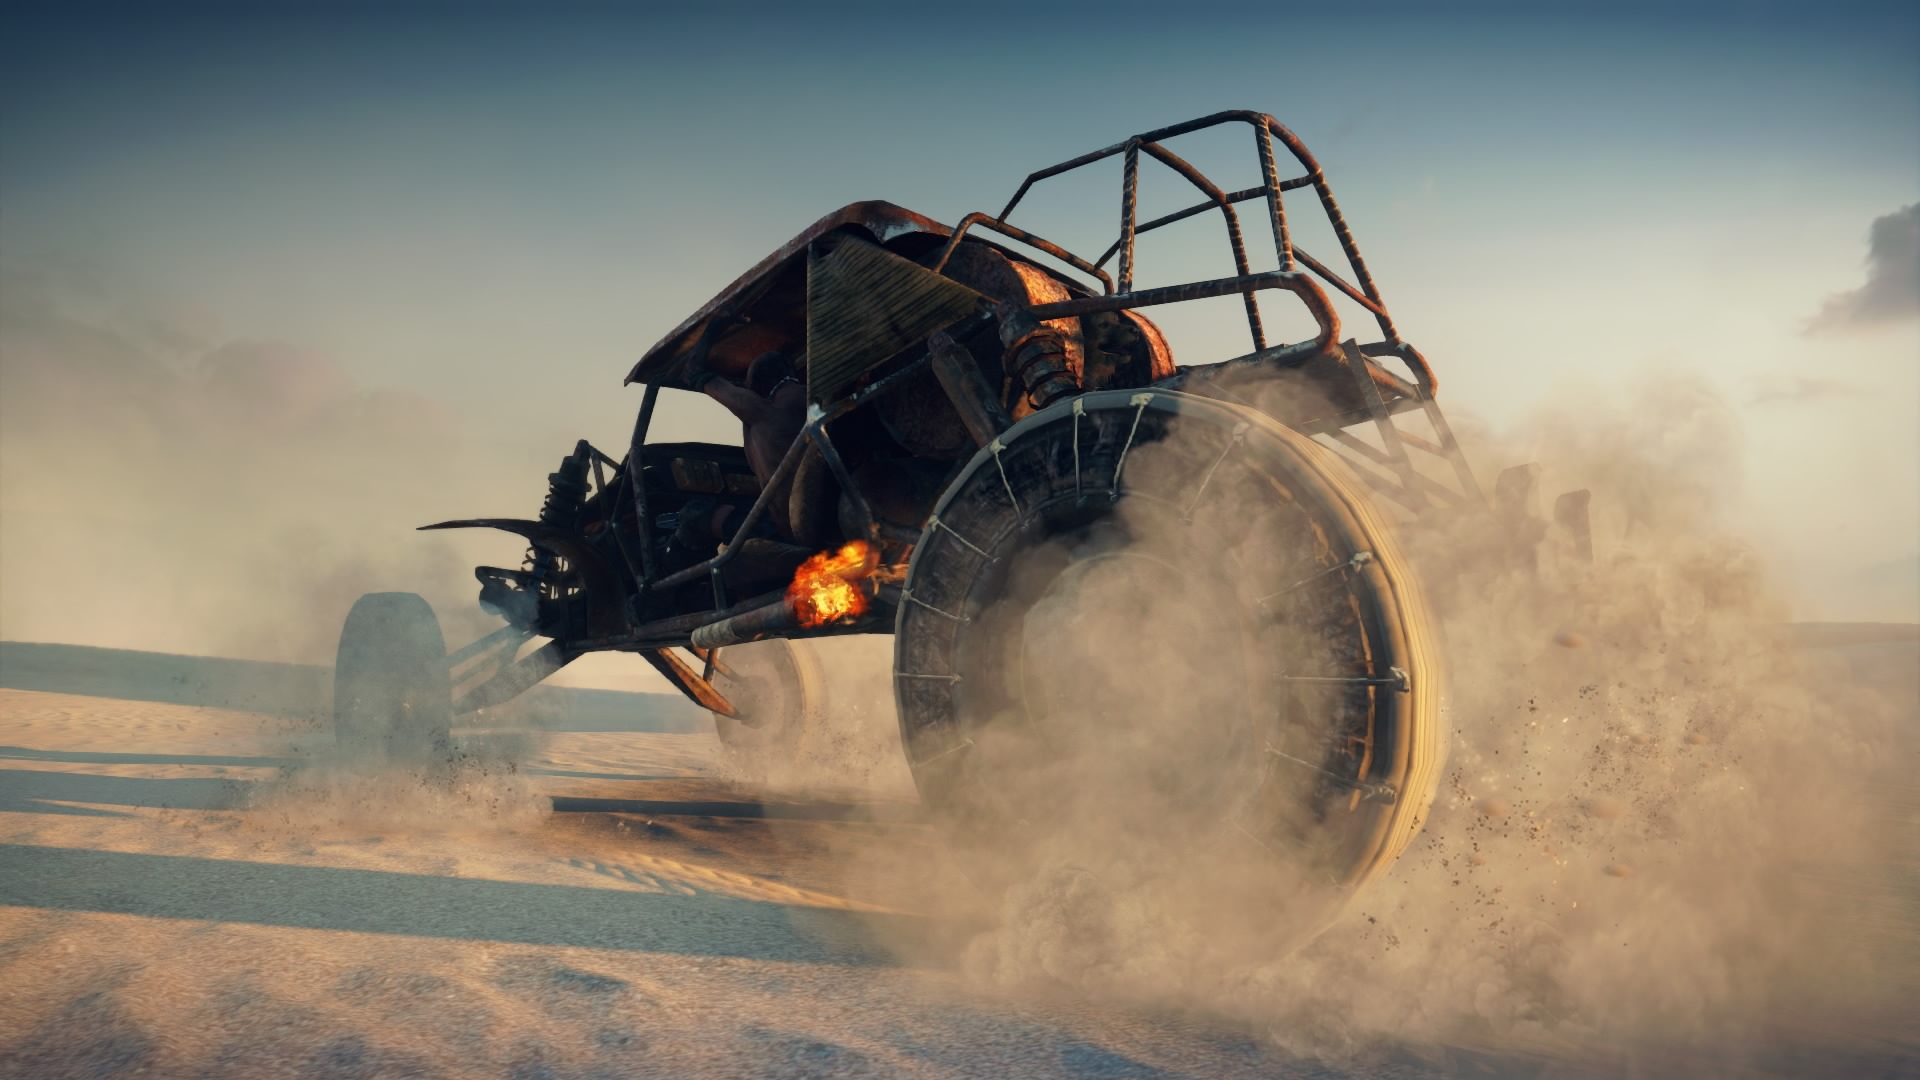 The Gameplay Places An Emphasis On Both Melee And Vehicular Combat Gives Players Control Of Magnum Opus Mad Max Ps4